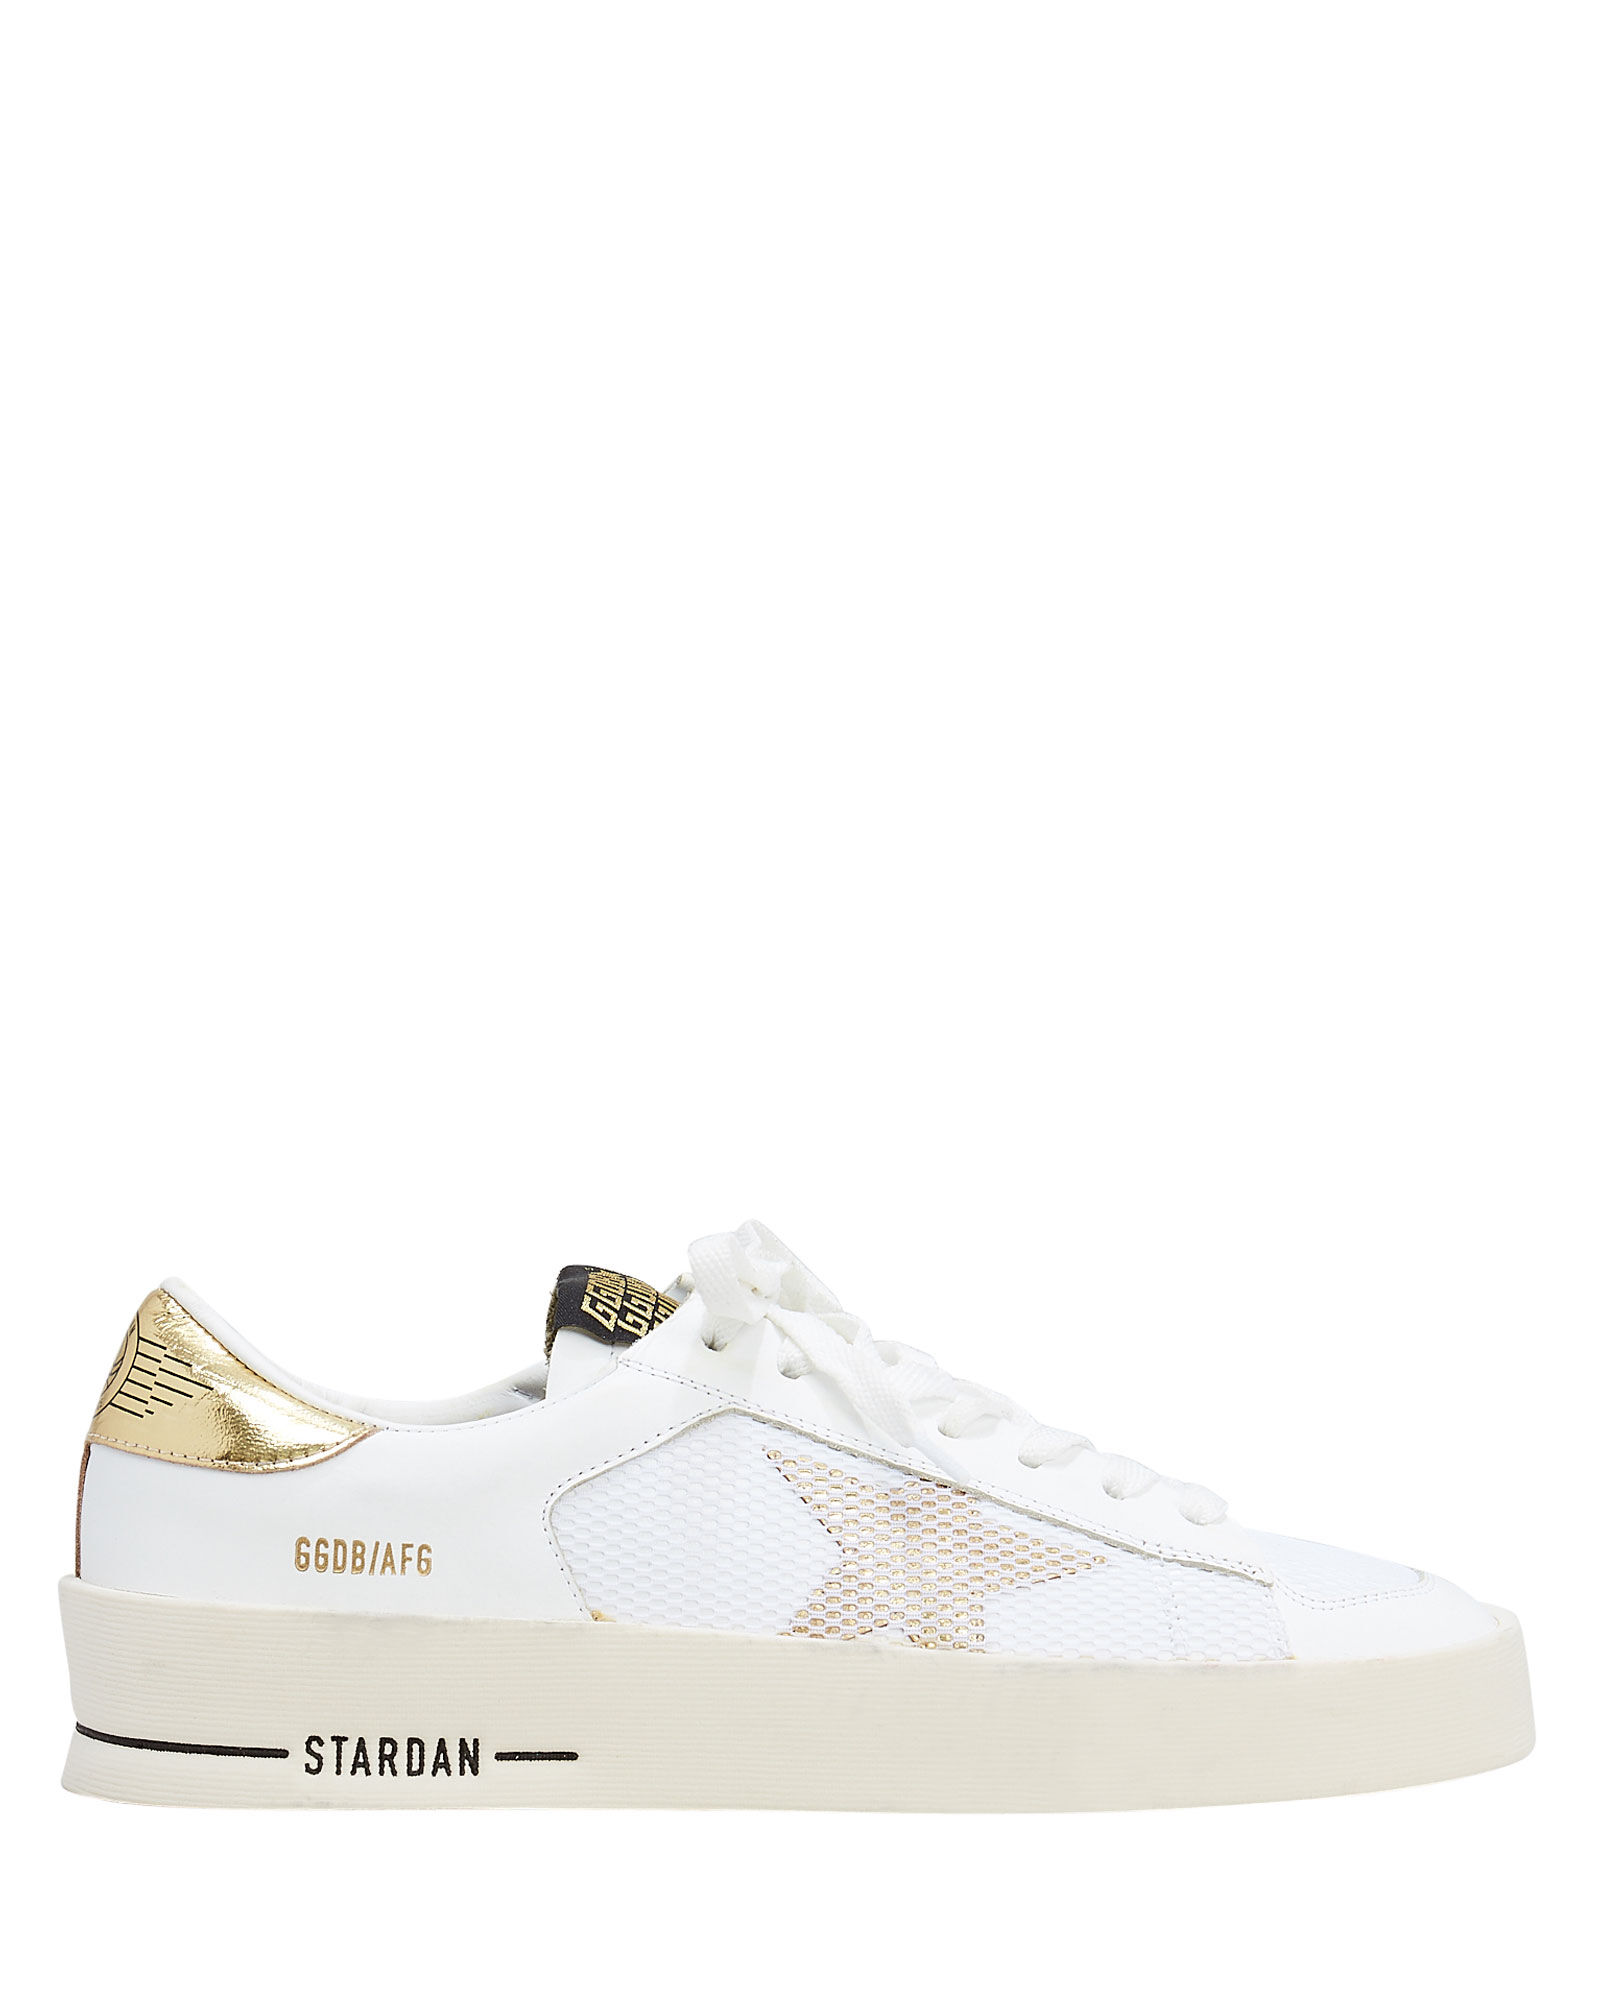 Star Dan White Leather Sneakers   INTERMIX®